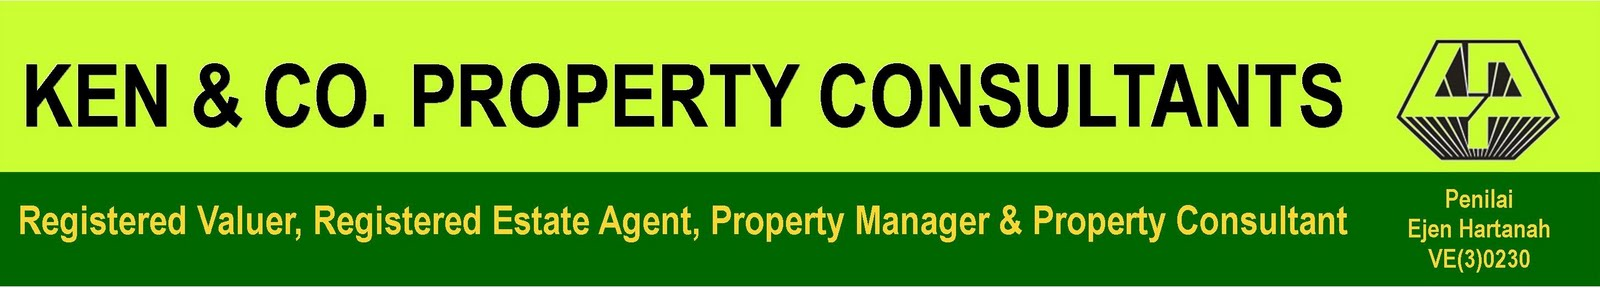 REAL ESTATE AGENT AND VALUATION CONSULTANT FOR SARAWAK KEN & CO PROPERTY CONSULTANTS